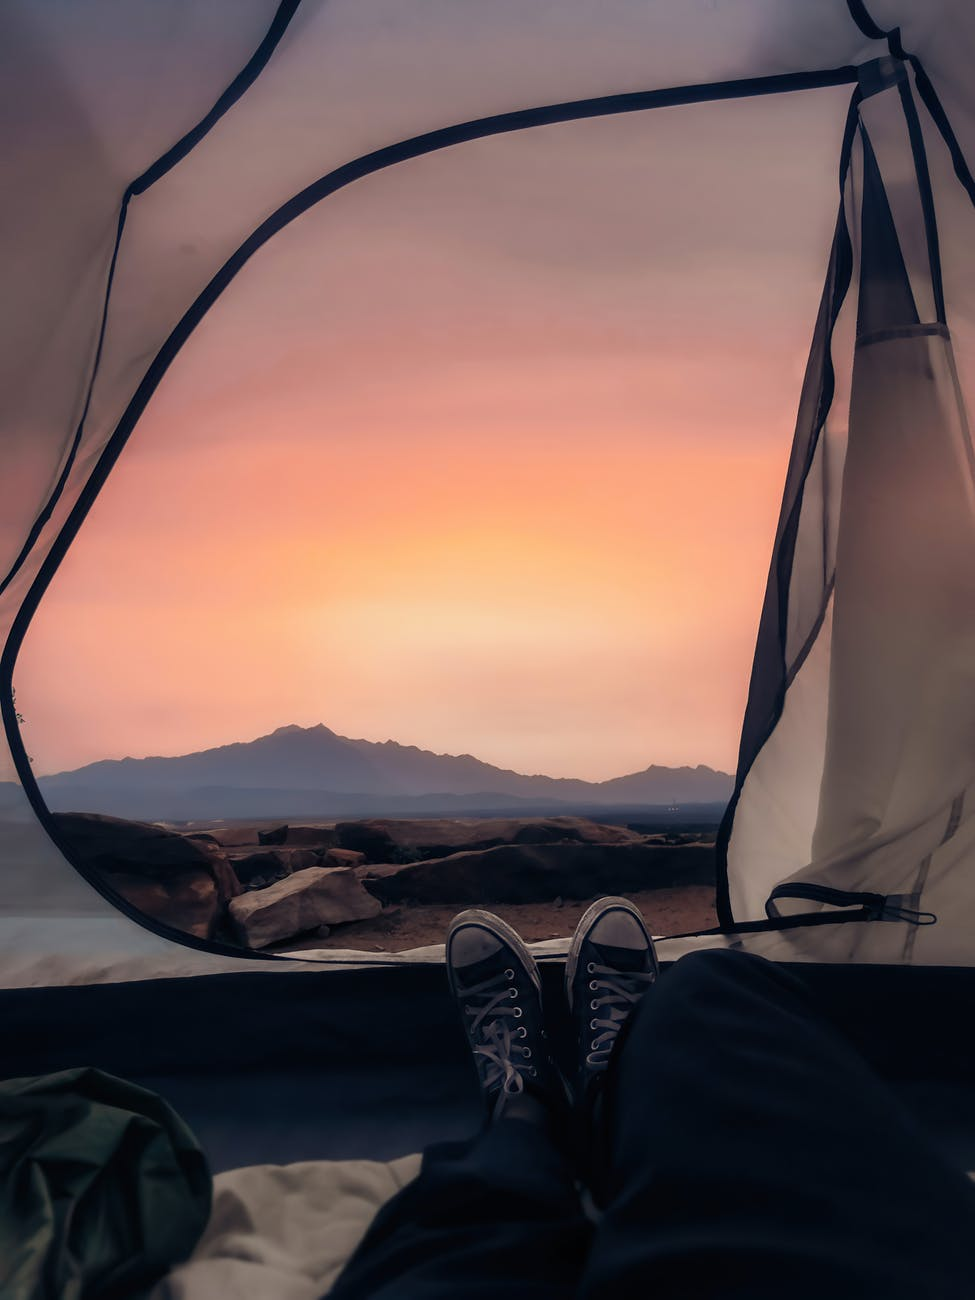 traveler lying in tent and enjoying bright sunset light